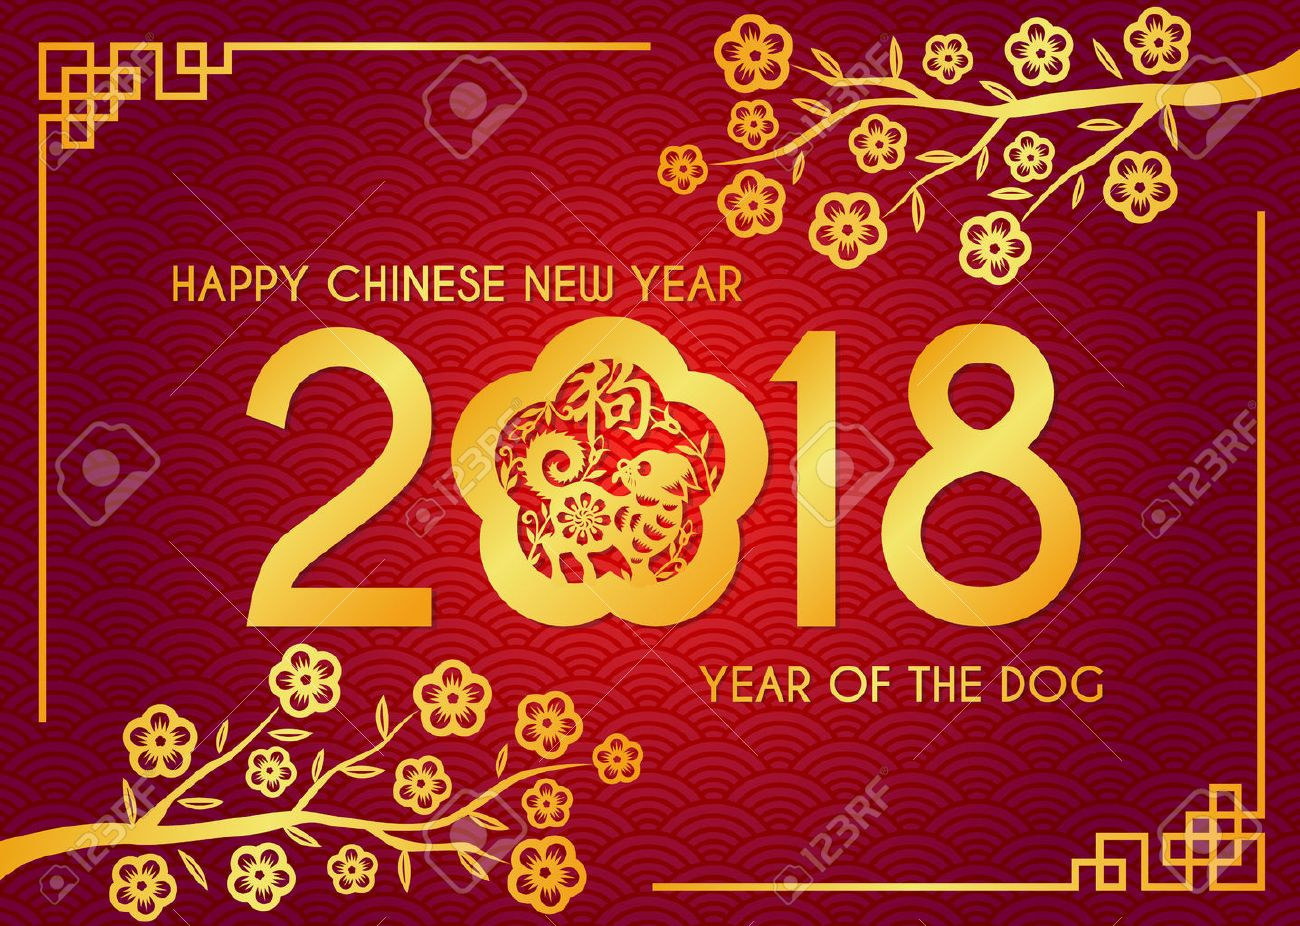 Chinese New Year 2018 Stock Photos Royalty Free Chinese New Year